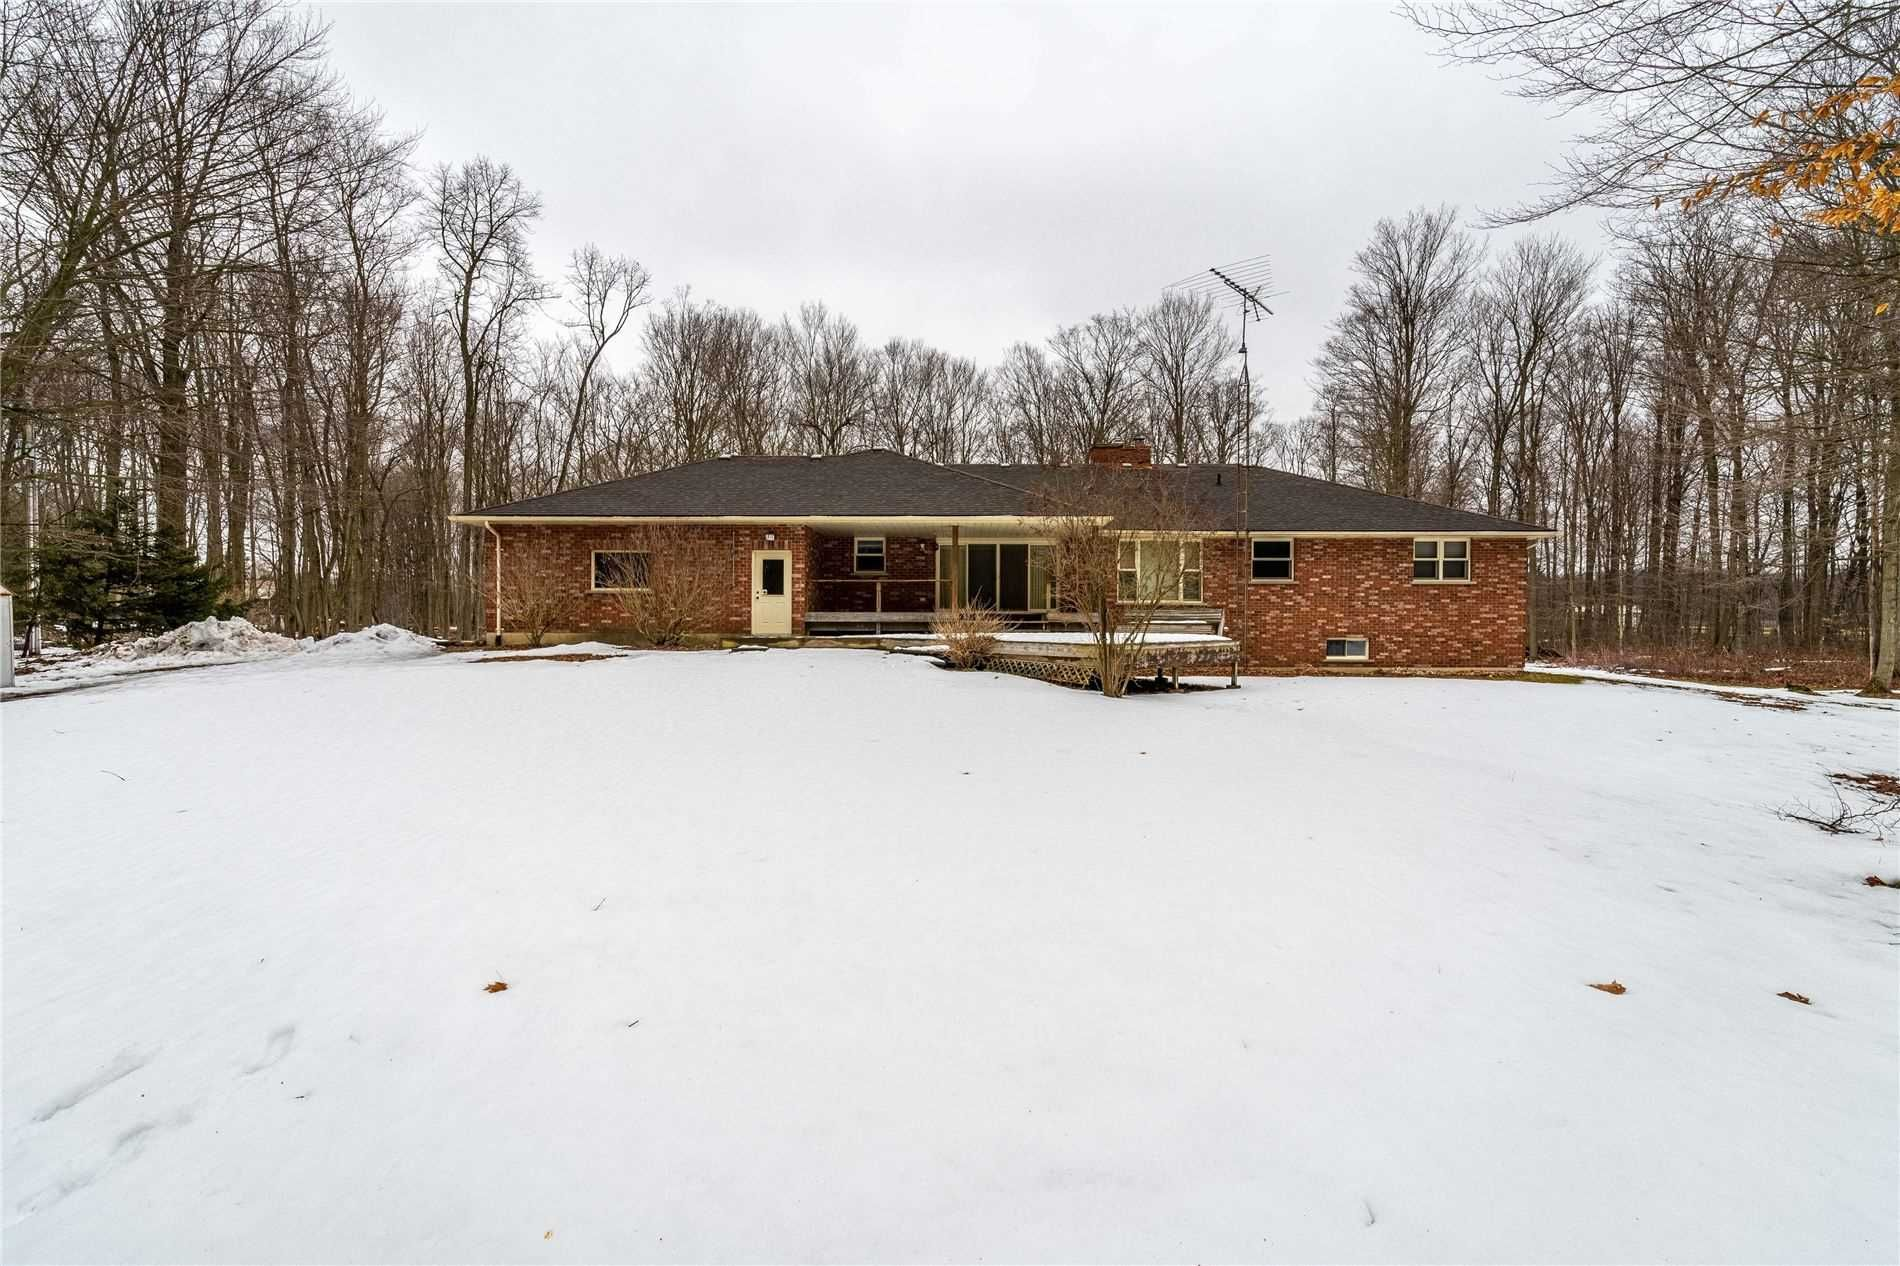 Photo 17: Photos: 918 Windham12 Road in Norfolk: Simcoe House (Bungalow) for sale : MLS®# X4707719